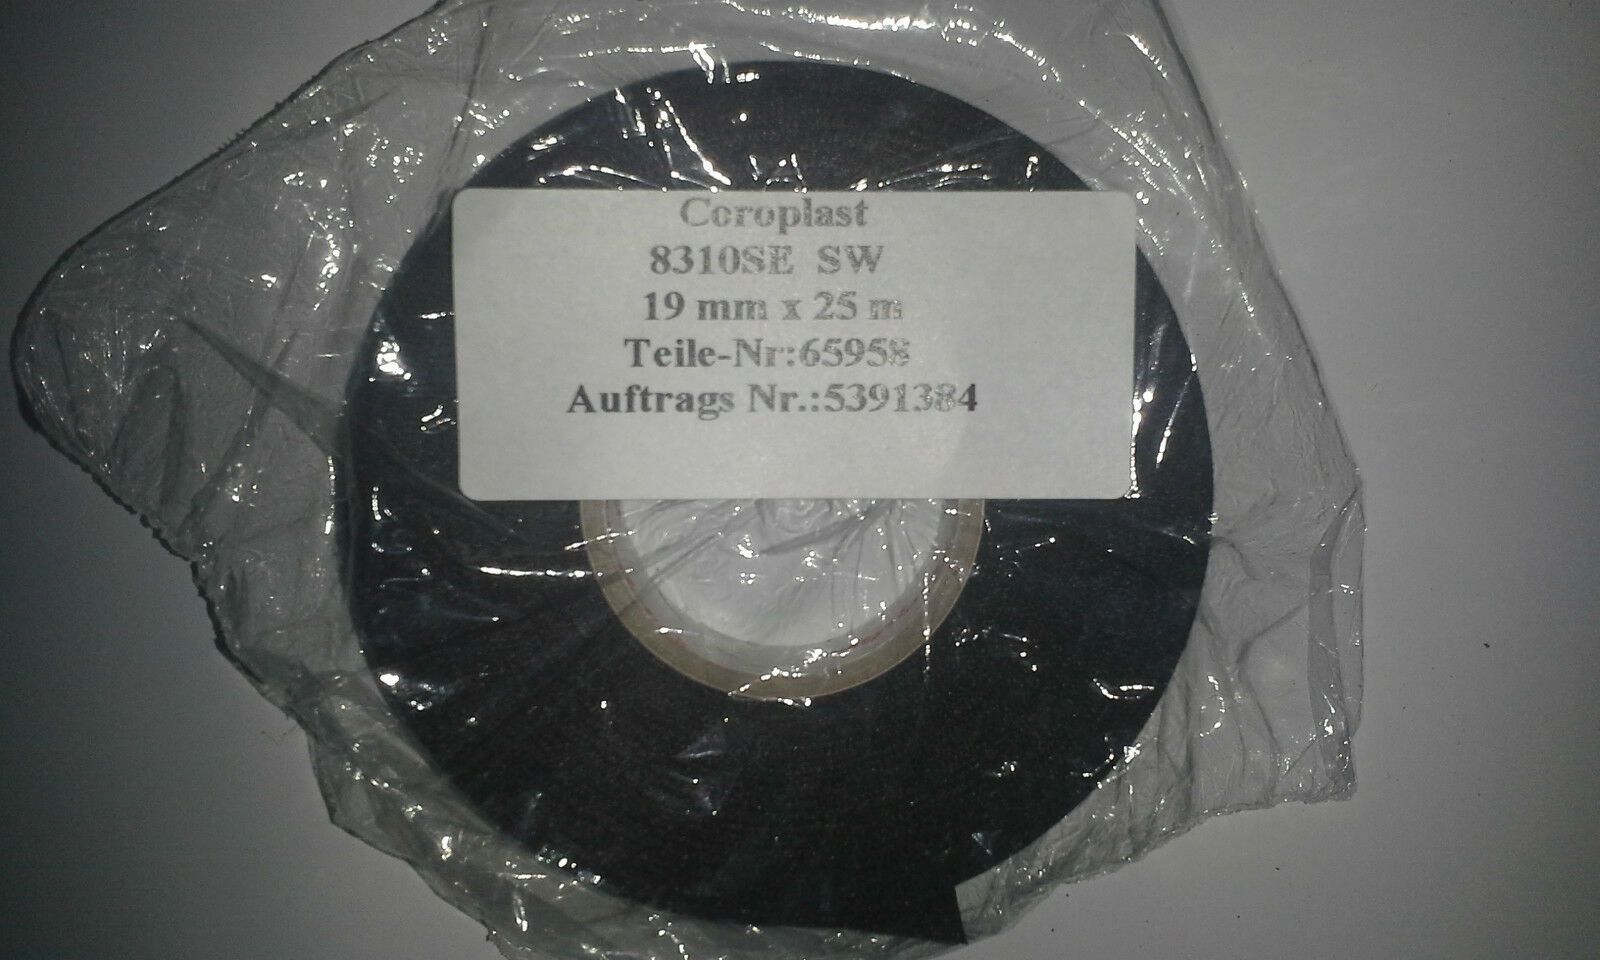 Oem 8310se Coroplast Automotive Adhesive Tape Pet 1 Case Wire Wiring Harness Labels Picture Of 6